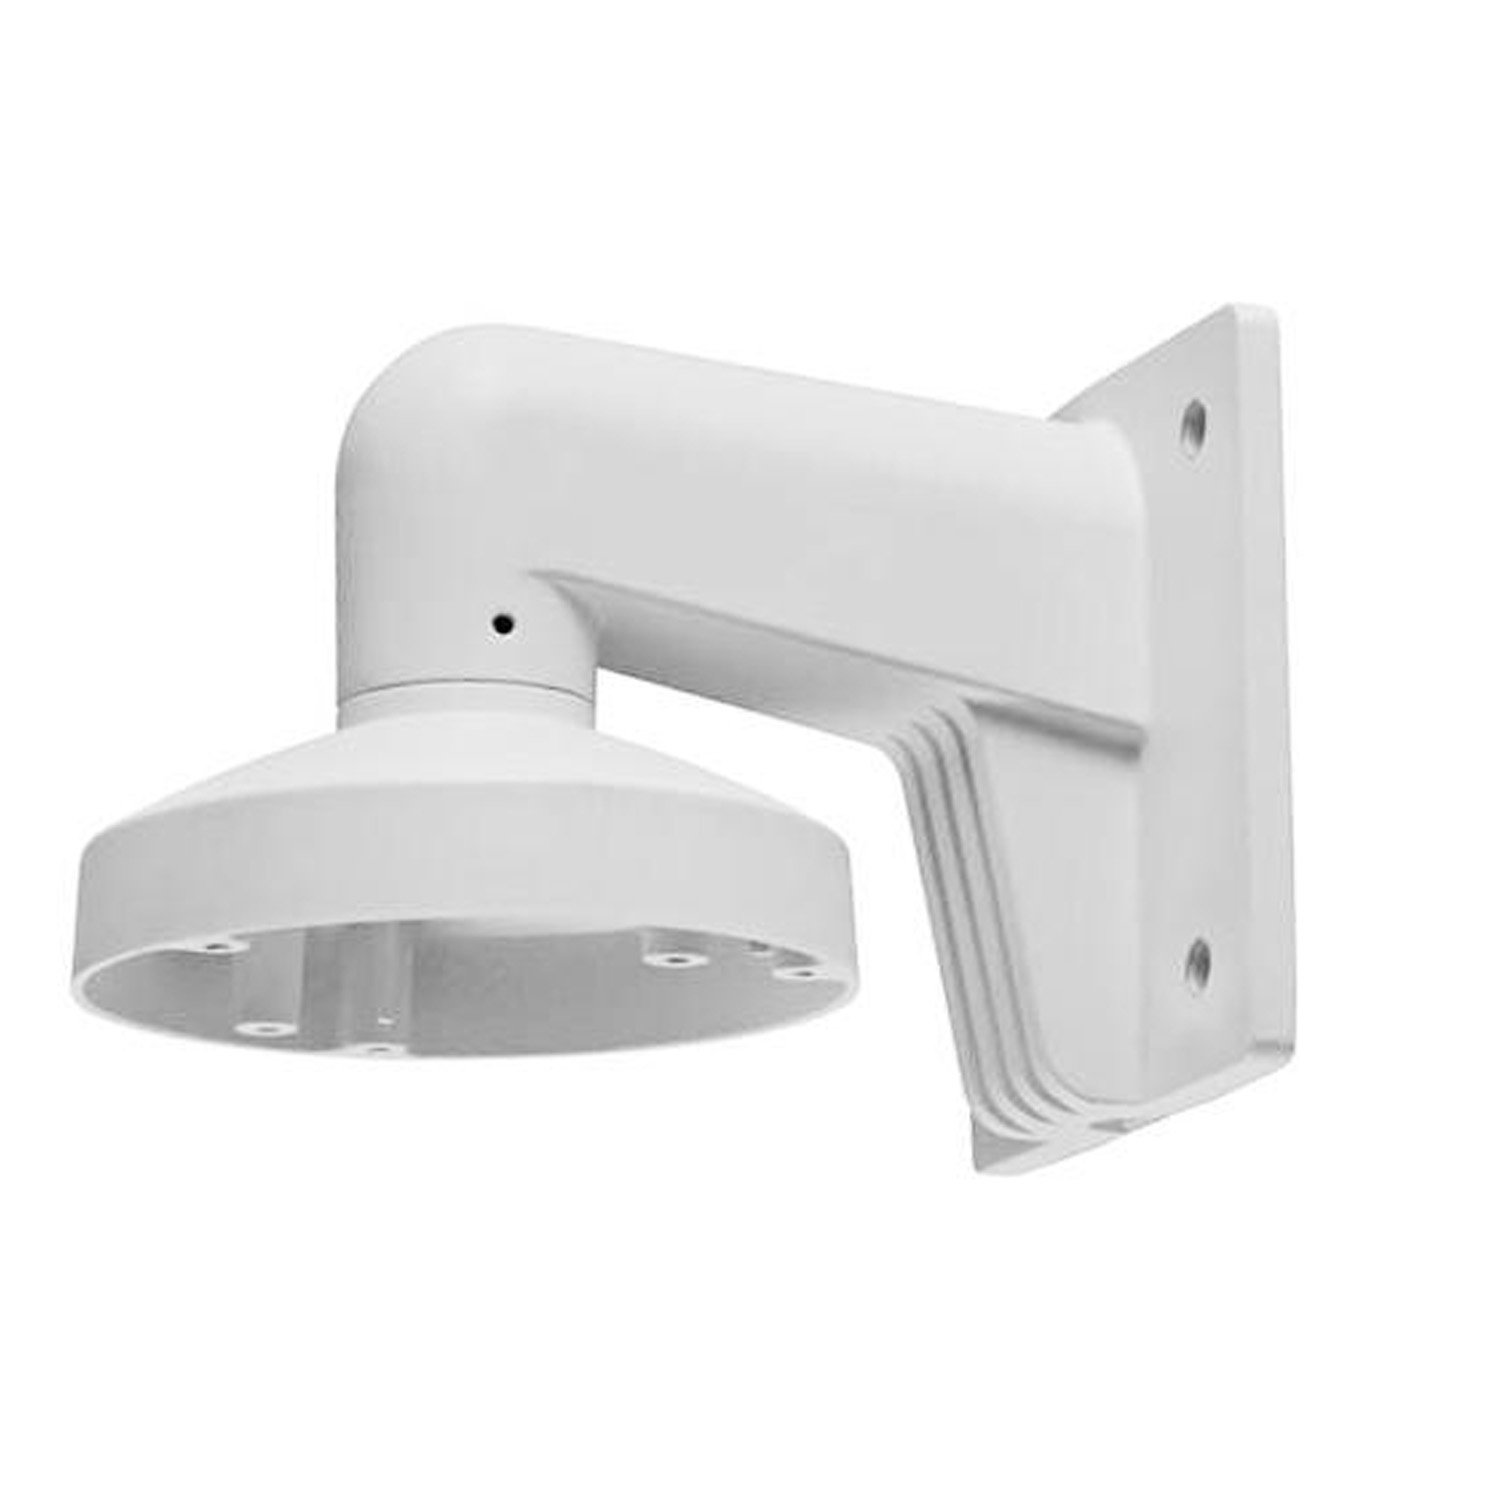 Hykamic DS-1272ZJ-110 Indoor and Outdoor Wall Mounting Bracket for Hikvision Fixed Lens Dome IP Camera DS-2CD21x2 by HYKAMIC